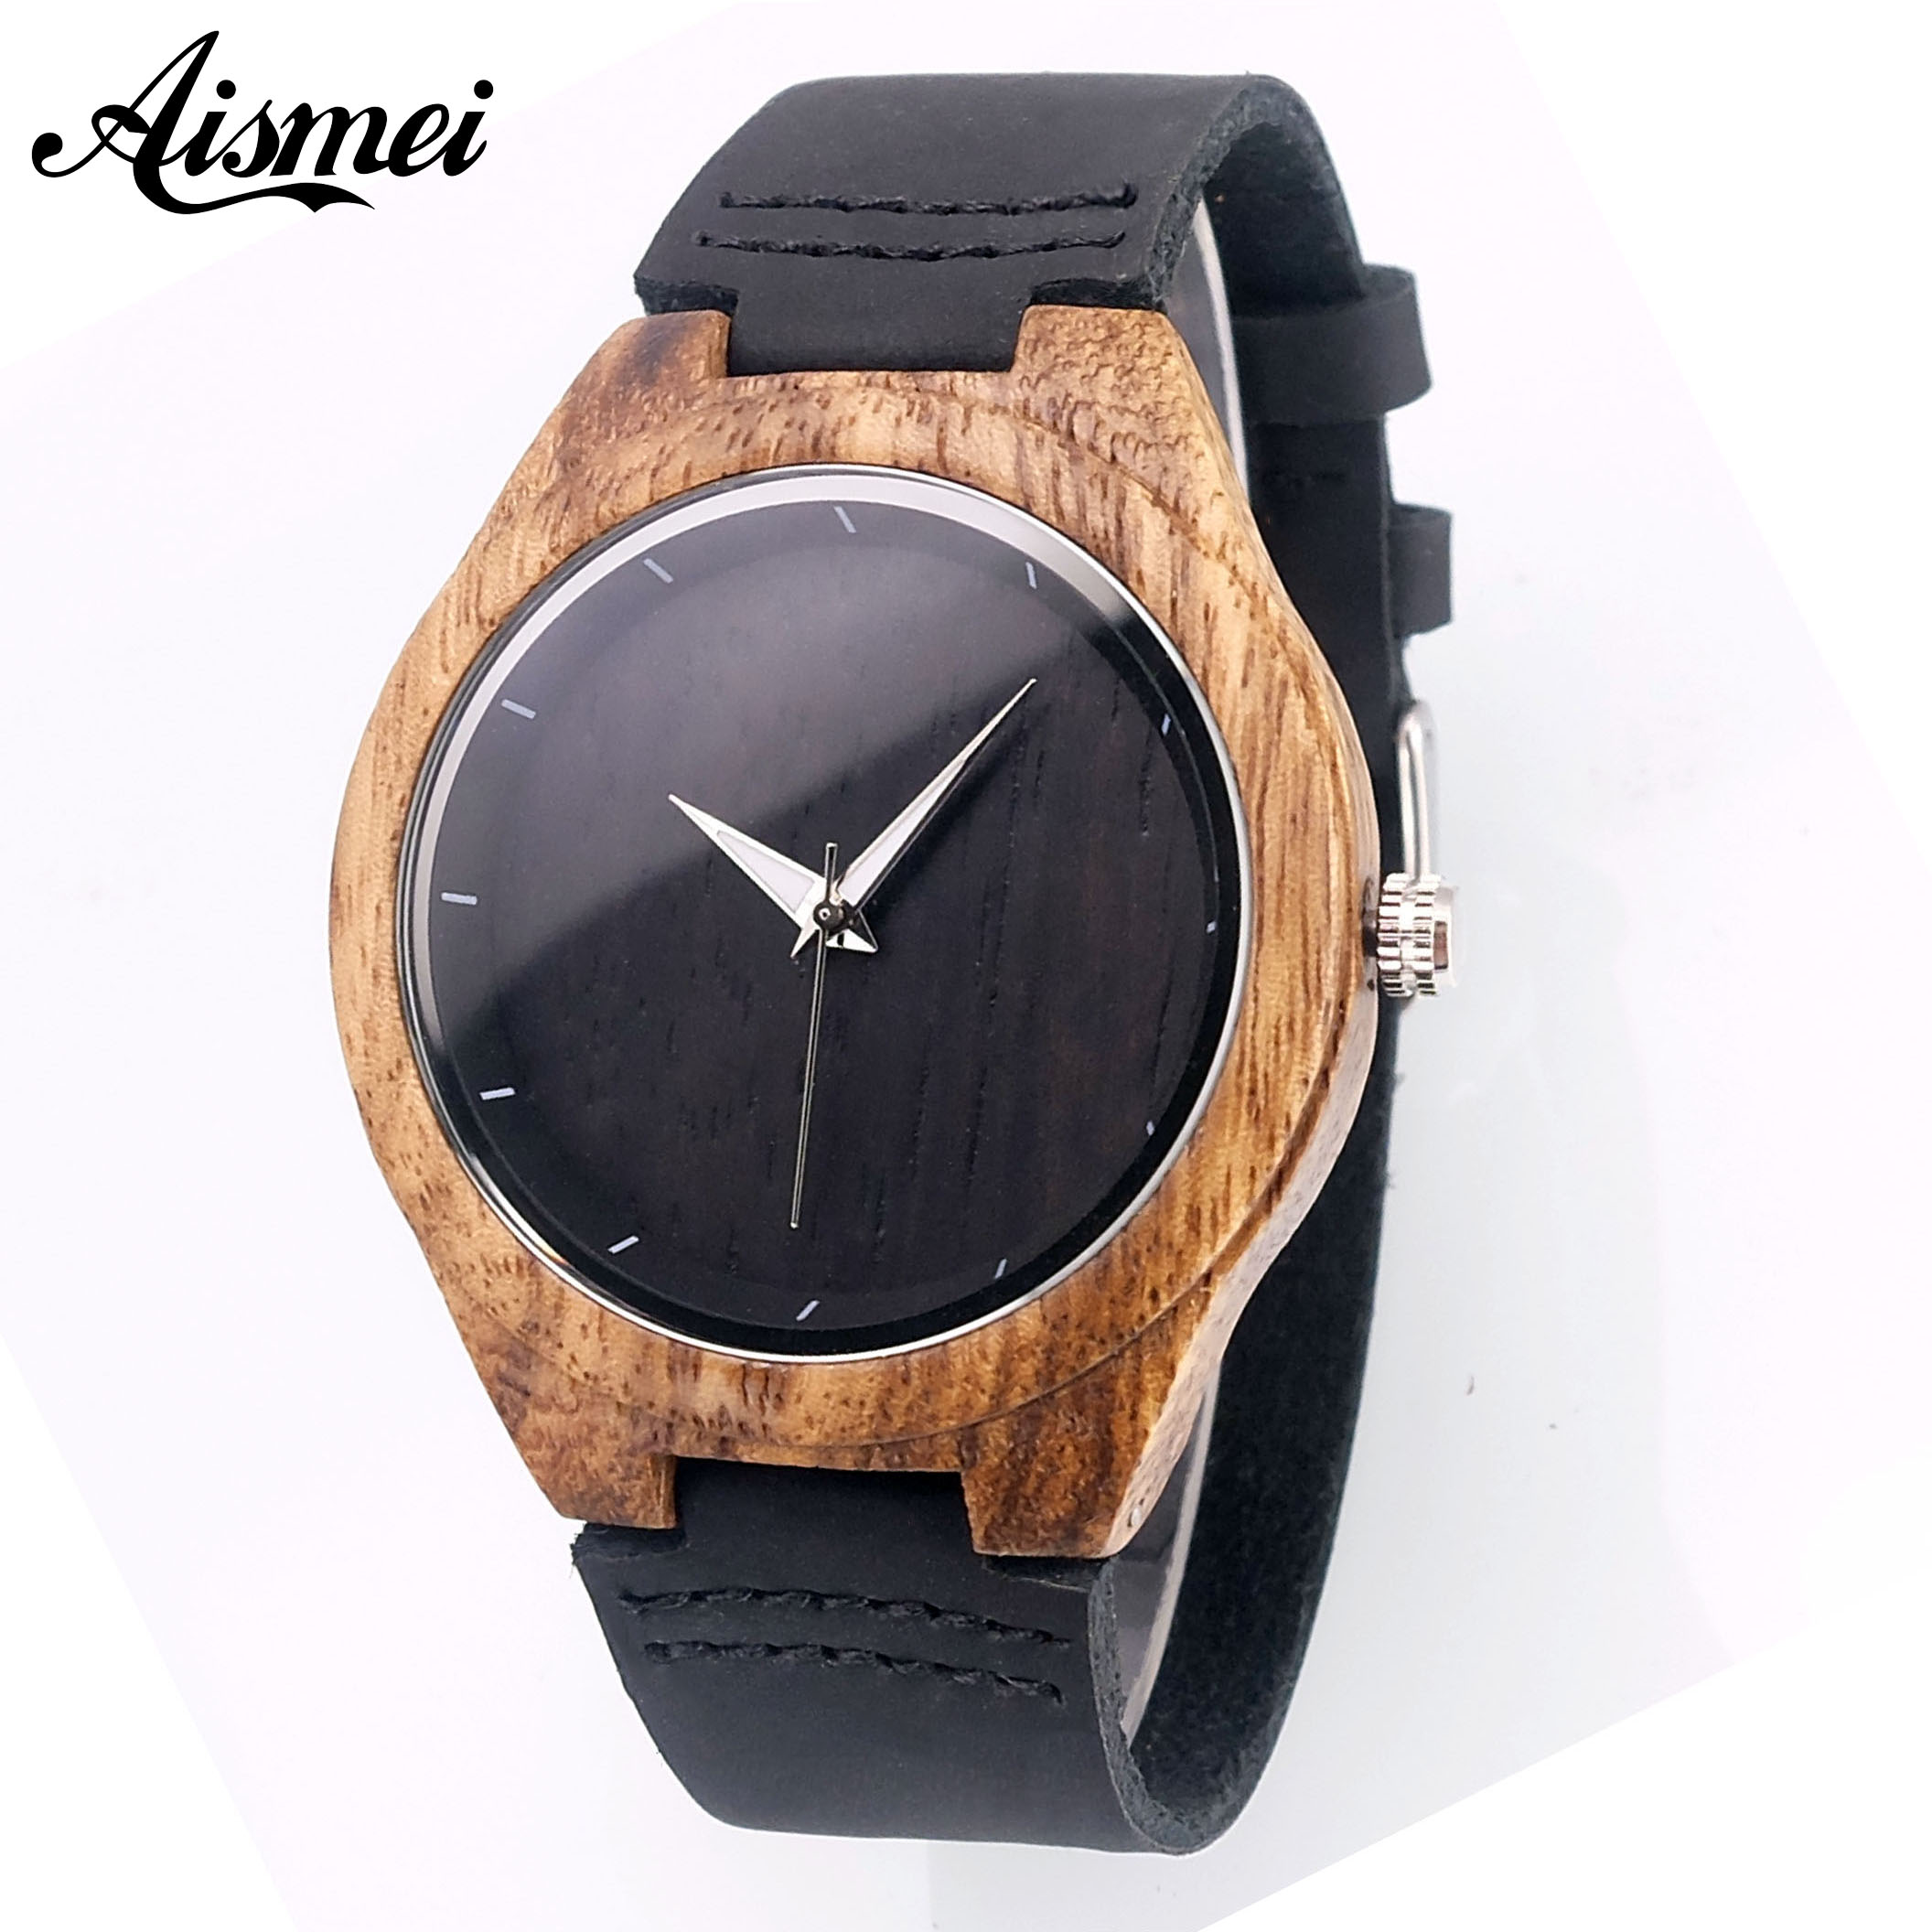 2018 Fashion Men Bamboo Wood Watch Unique Black Male Dress Watches with Genuine Leather Strap Quartz Analog Wooden Wristwatch unique handmade natural bamboo wood watch analog mens simple quartz wristwatch male genuine leather relogio masculino esportivo